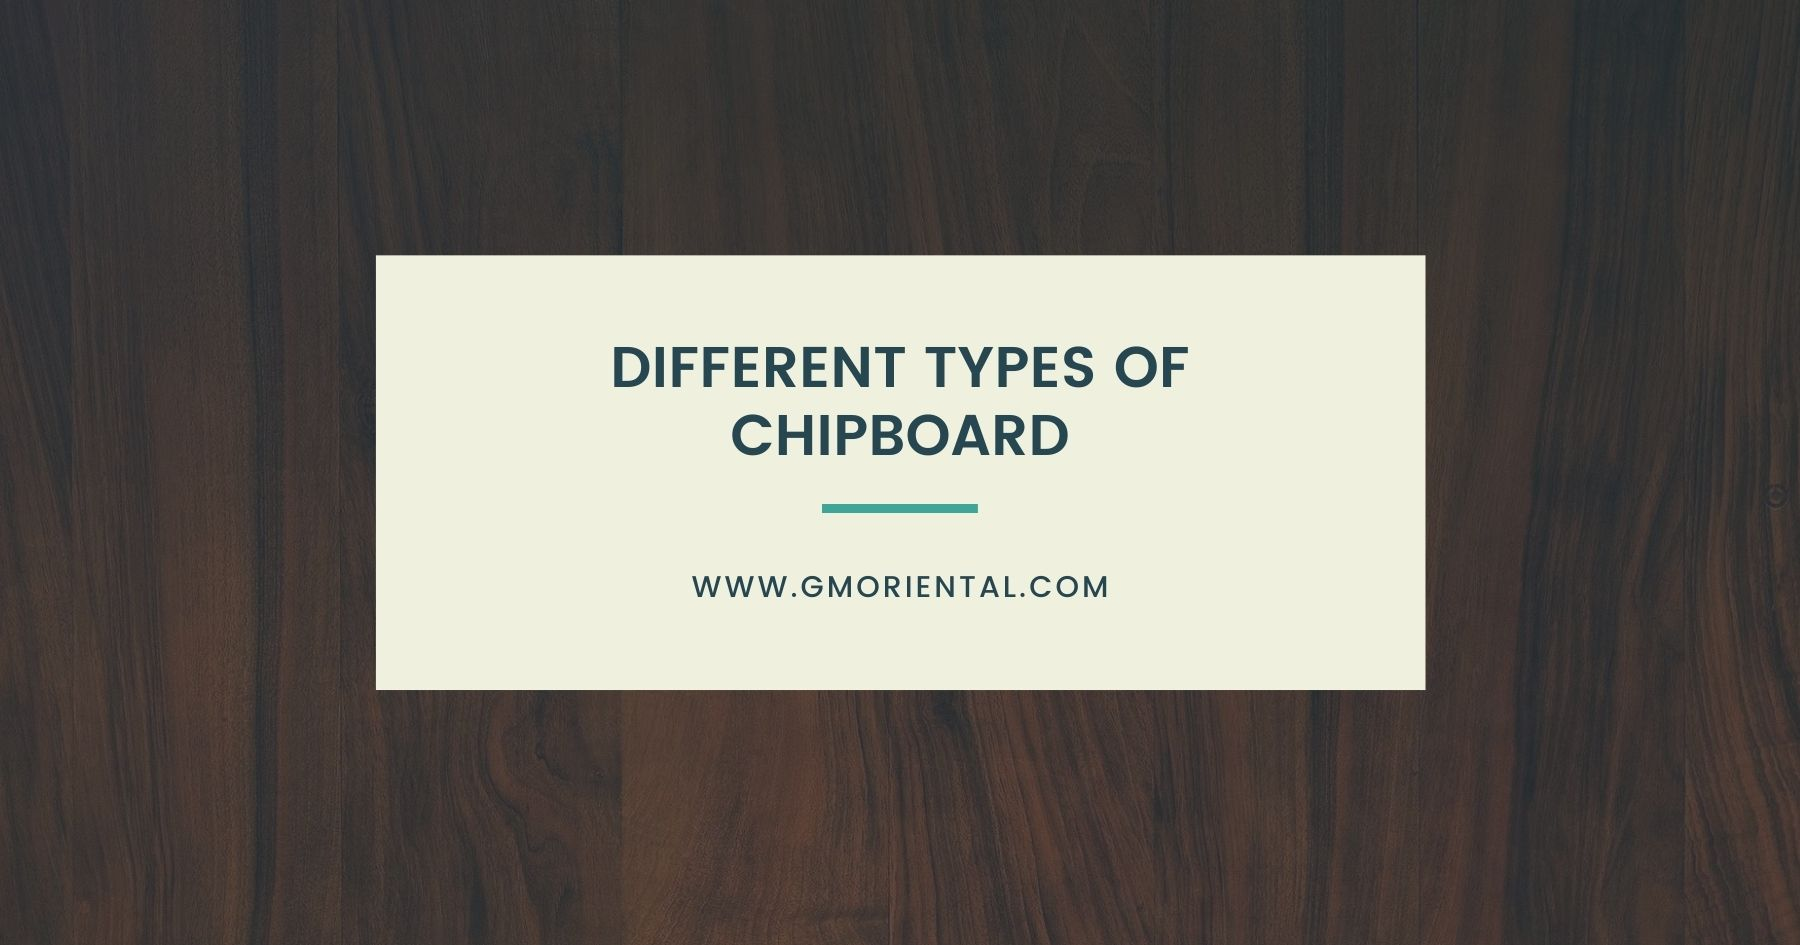 Different Types of Chipboard